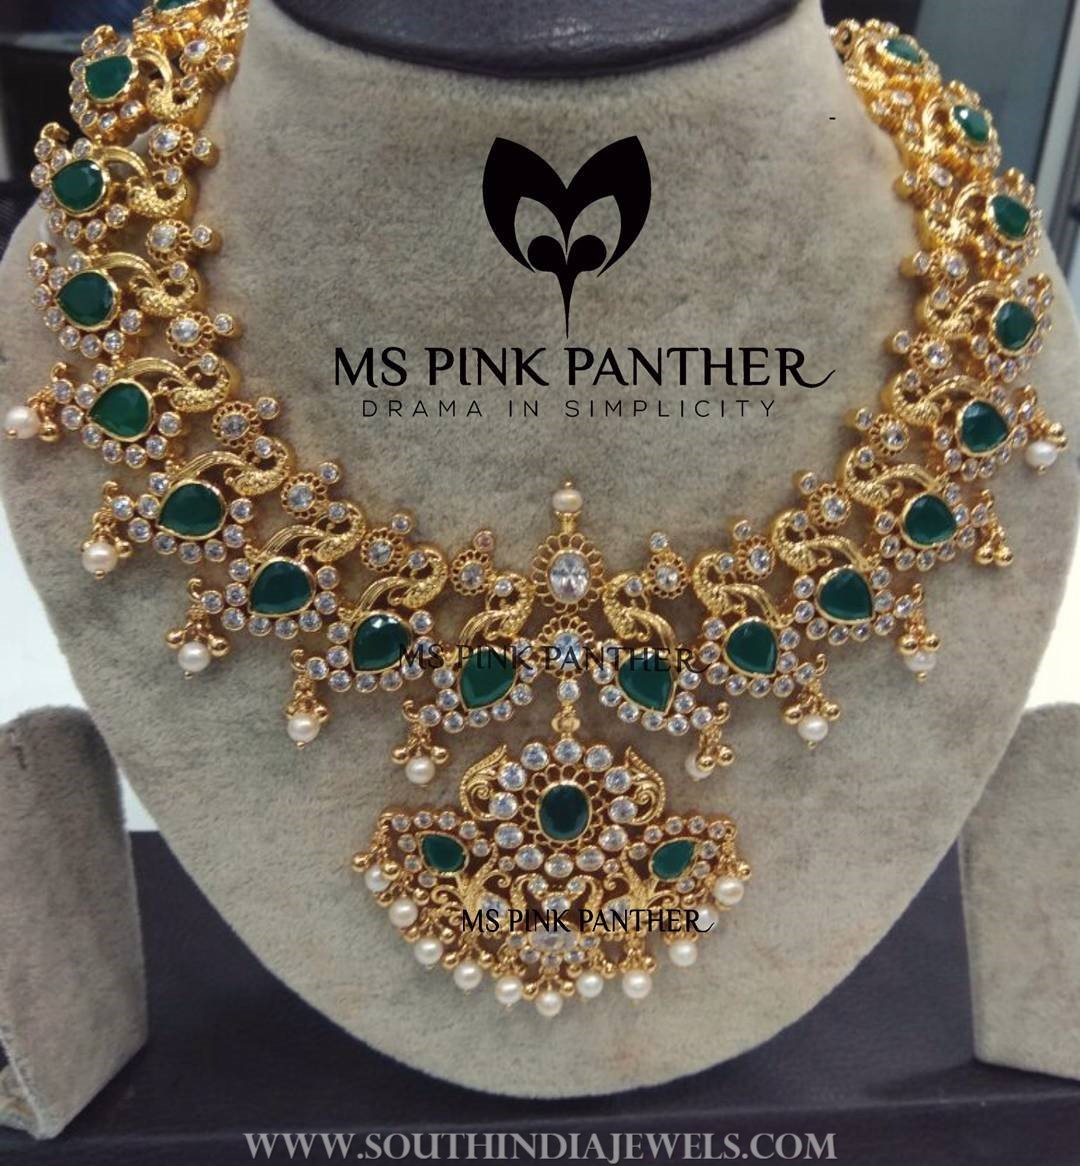 Gold Plated Emerald Necklace From Ms Pink Panthers